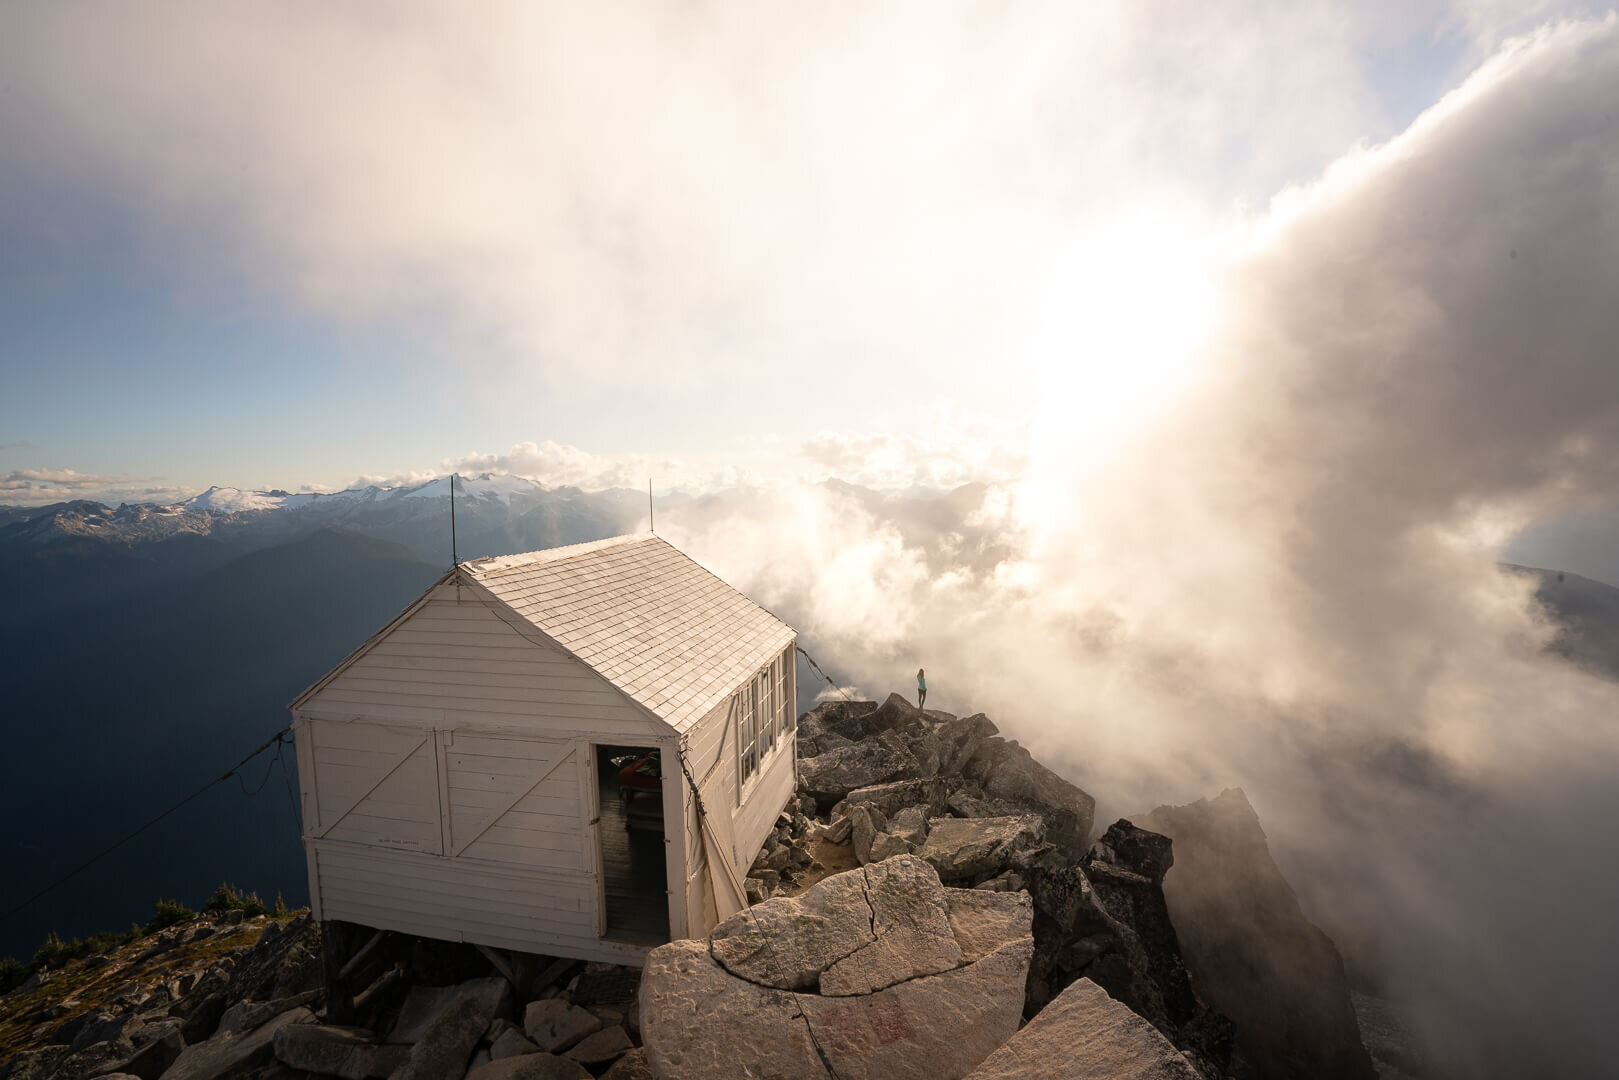 Hidden Lake Lookout was the first lookout I hiked to in Washington State, and it will always be a favorite.